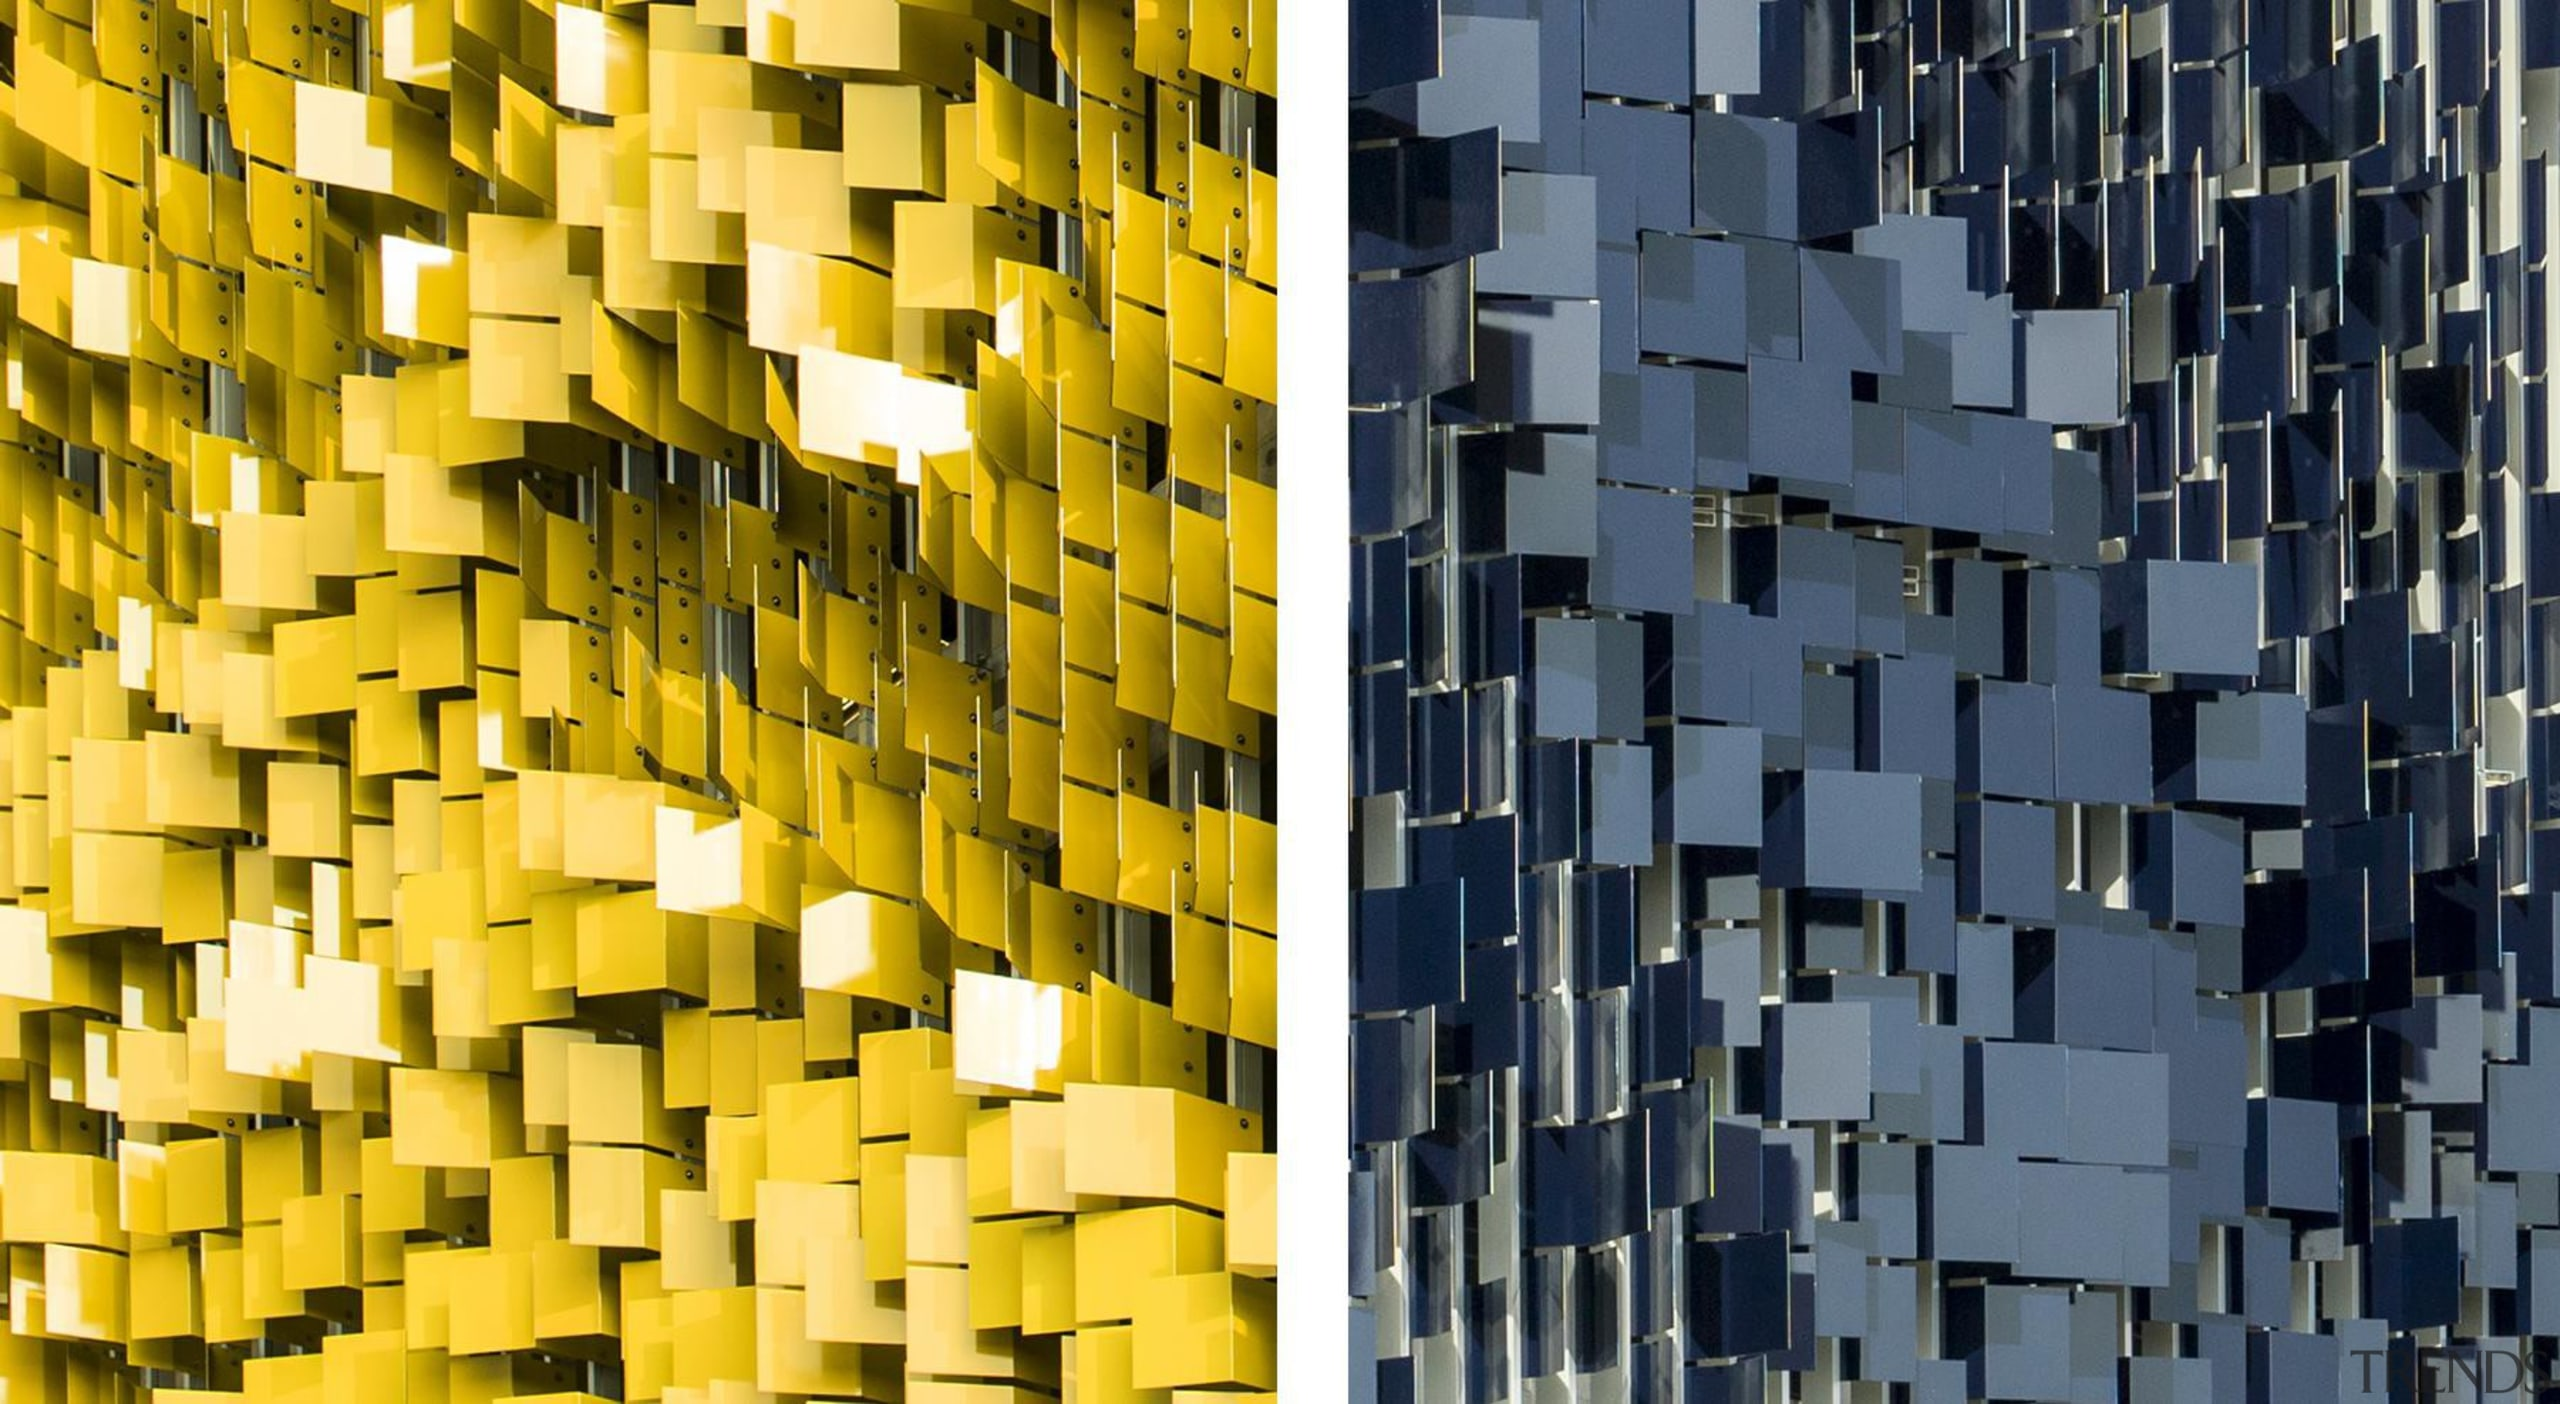 This display on the parking structure at Eskenazi architecture, building, facade, line, metropolis, pattern, skyscraper, symmetry, wall, yellow